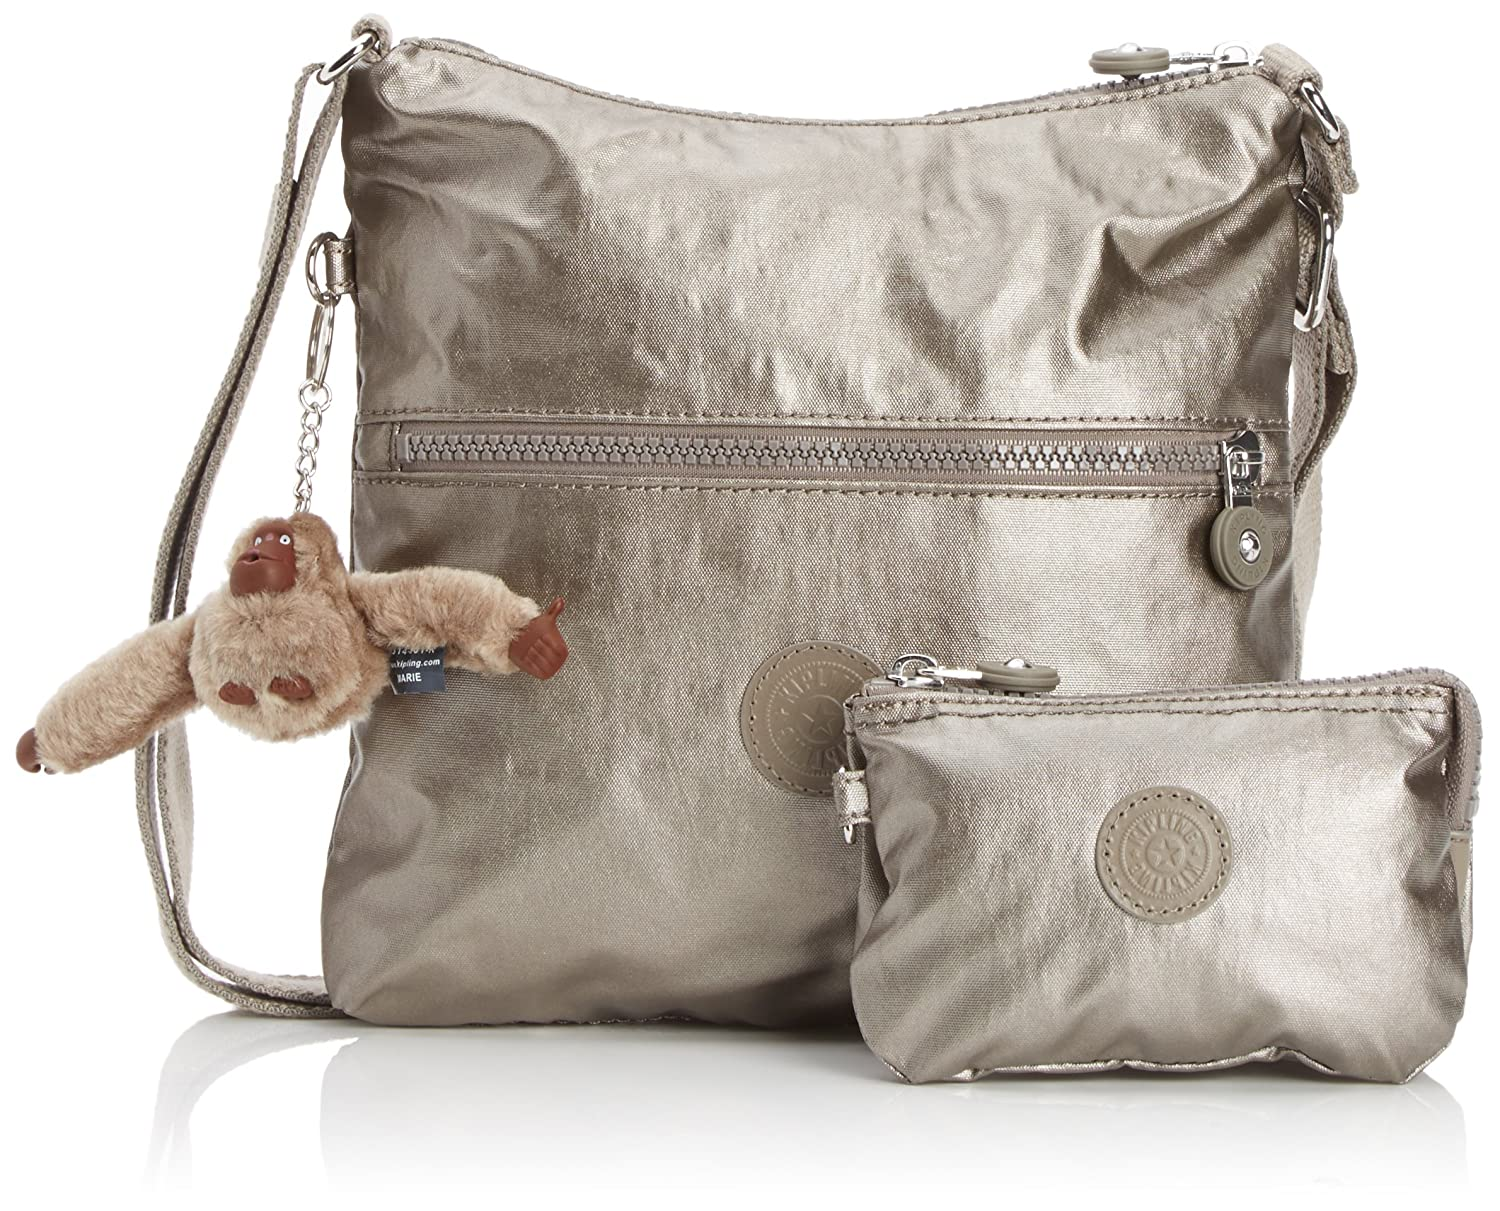 Kipling Women's Alexane Shoulder Bag K12463C21 Lacquer Pewter